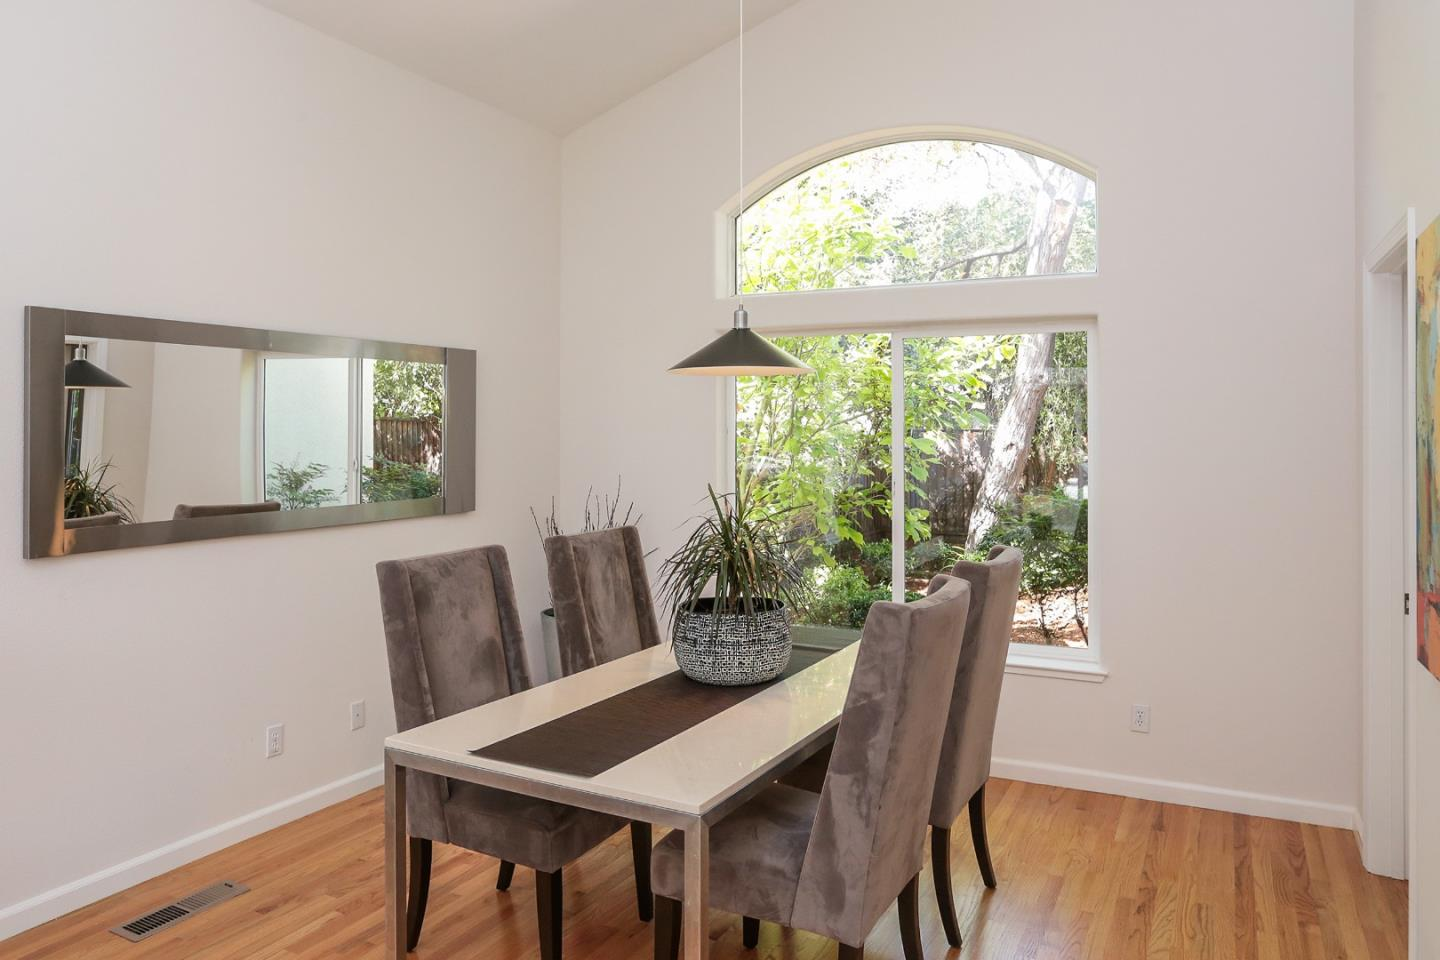 Additional photo for property listing at 3427 Ross Rd  PALO ALTO, CALIFORNIA 94303